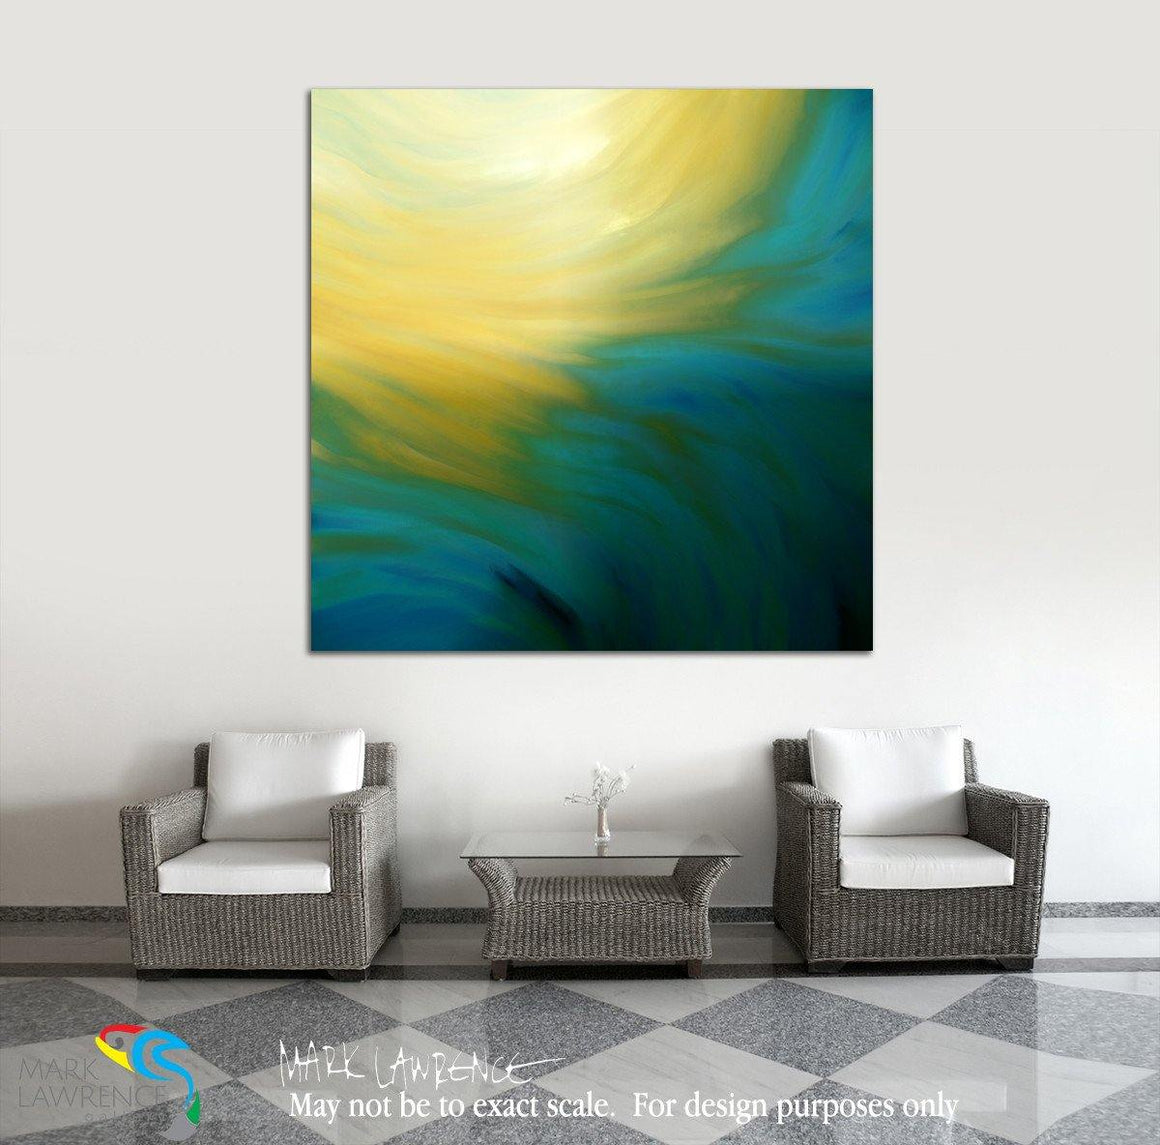 Interior Design Focal Art Inspiration-Christian Art- Colossians 2:9. Complete. Inspirational abstract art by Mark Lawrence. Original limited edition signed canvas & paper giclees